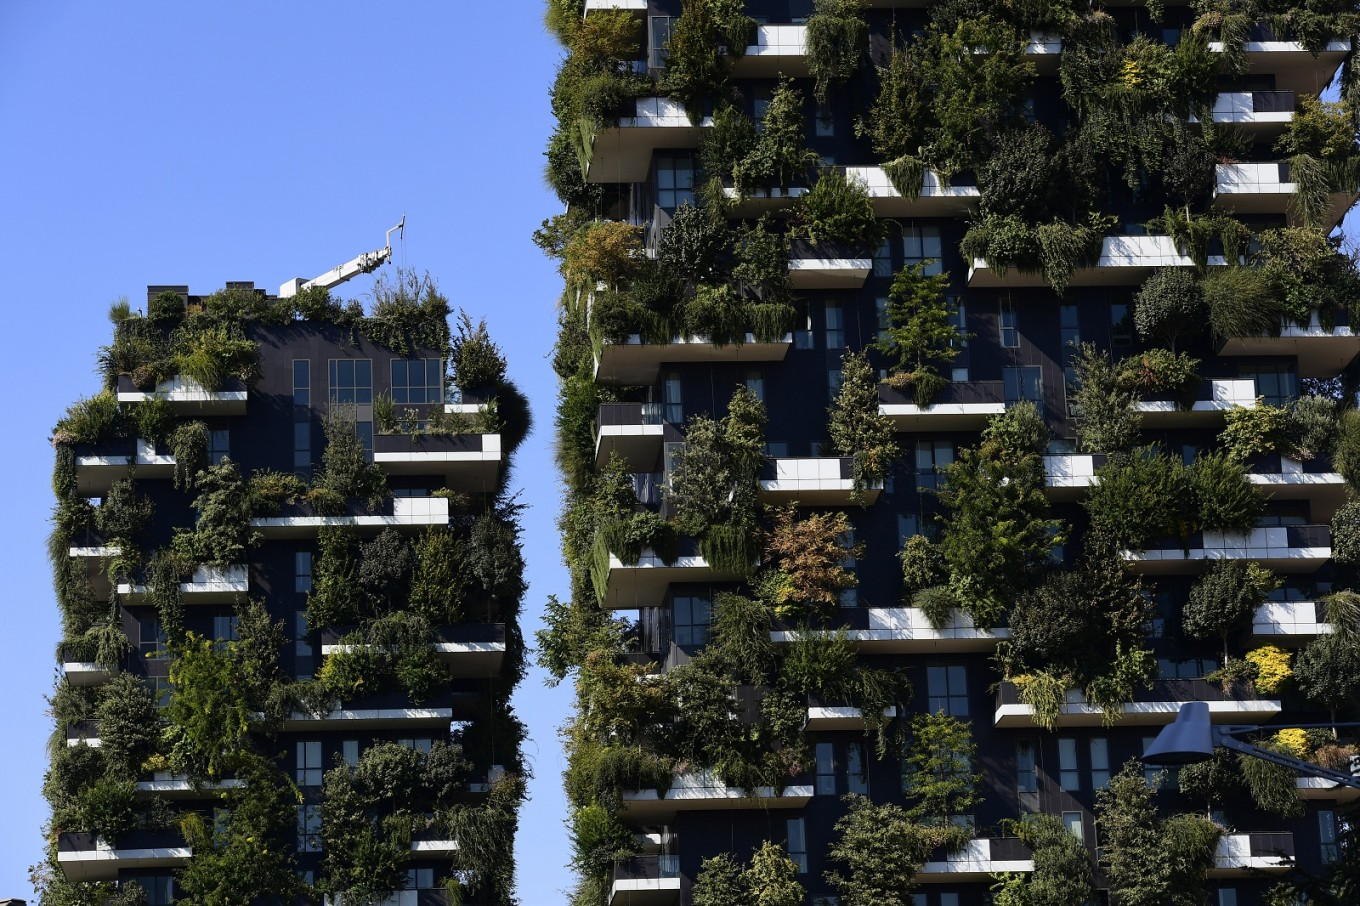 Five plant-covered buildings for greener environment